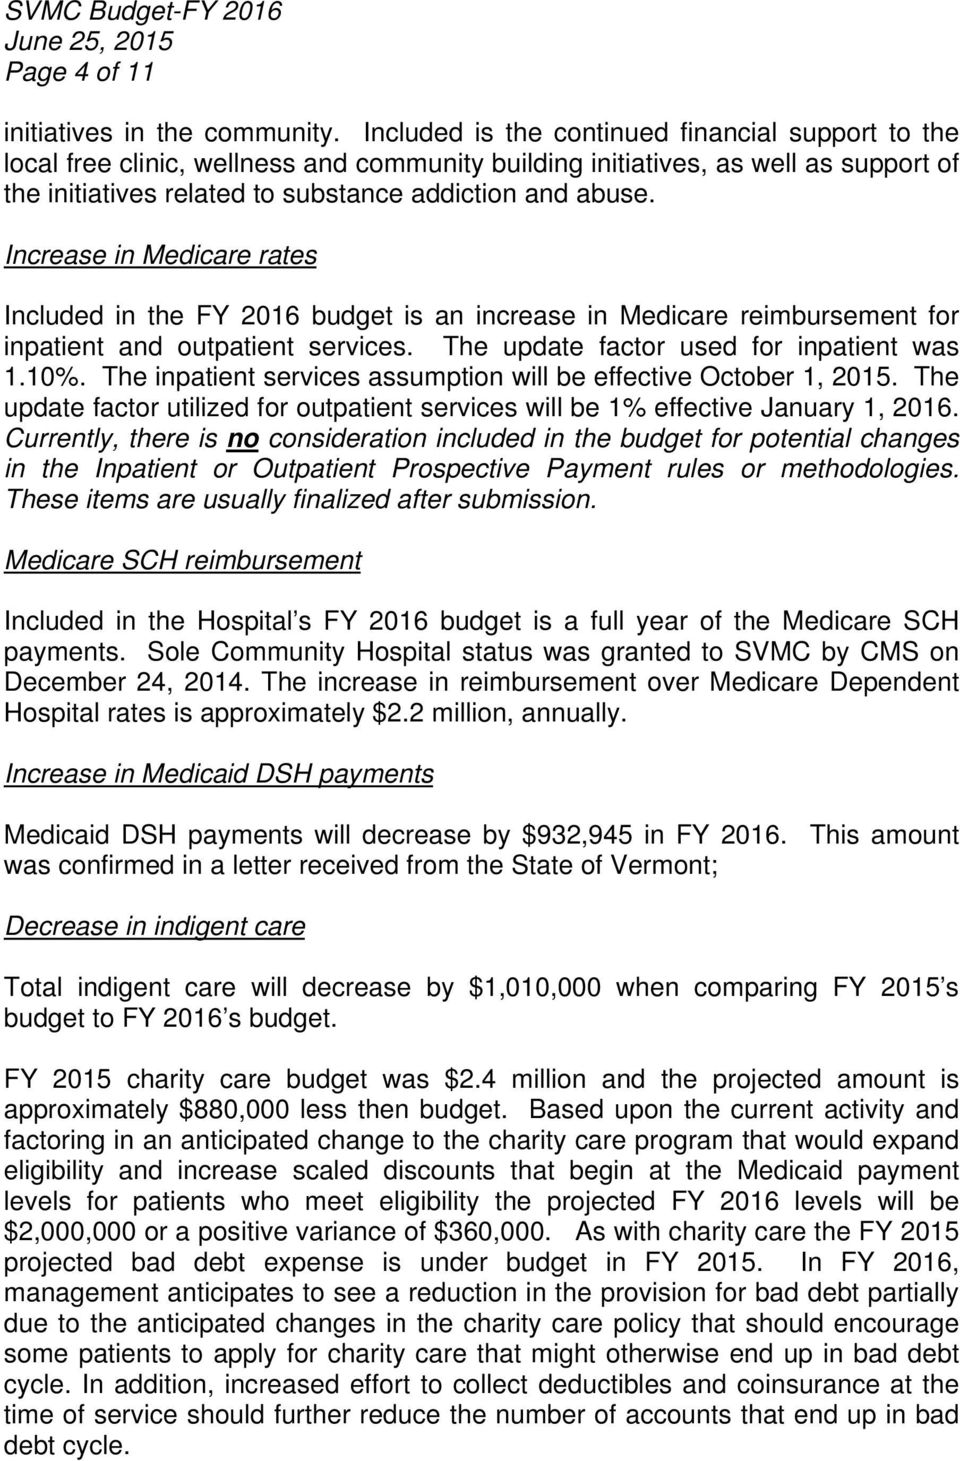 Increase in Medicare rates Included in the FY 2016 budget is an increase in Medicare reimbursement for inpatient and outpatient services. The update factor used for inpatient was 1.10%.